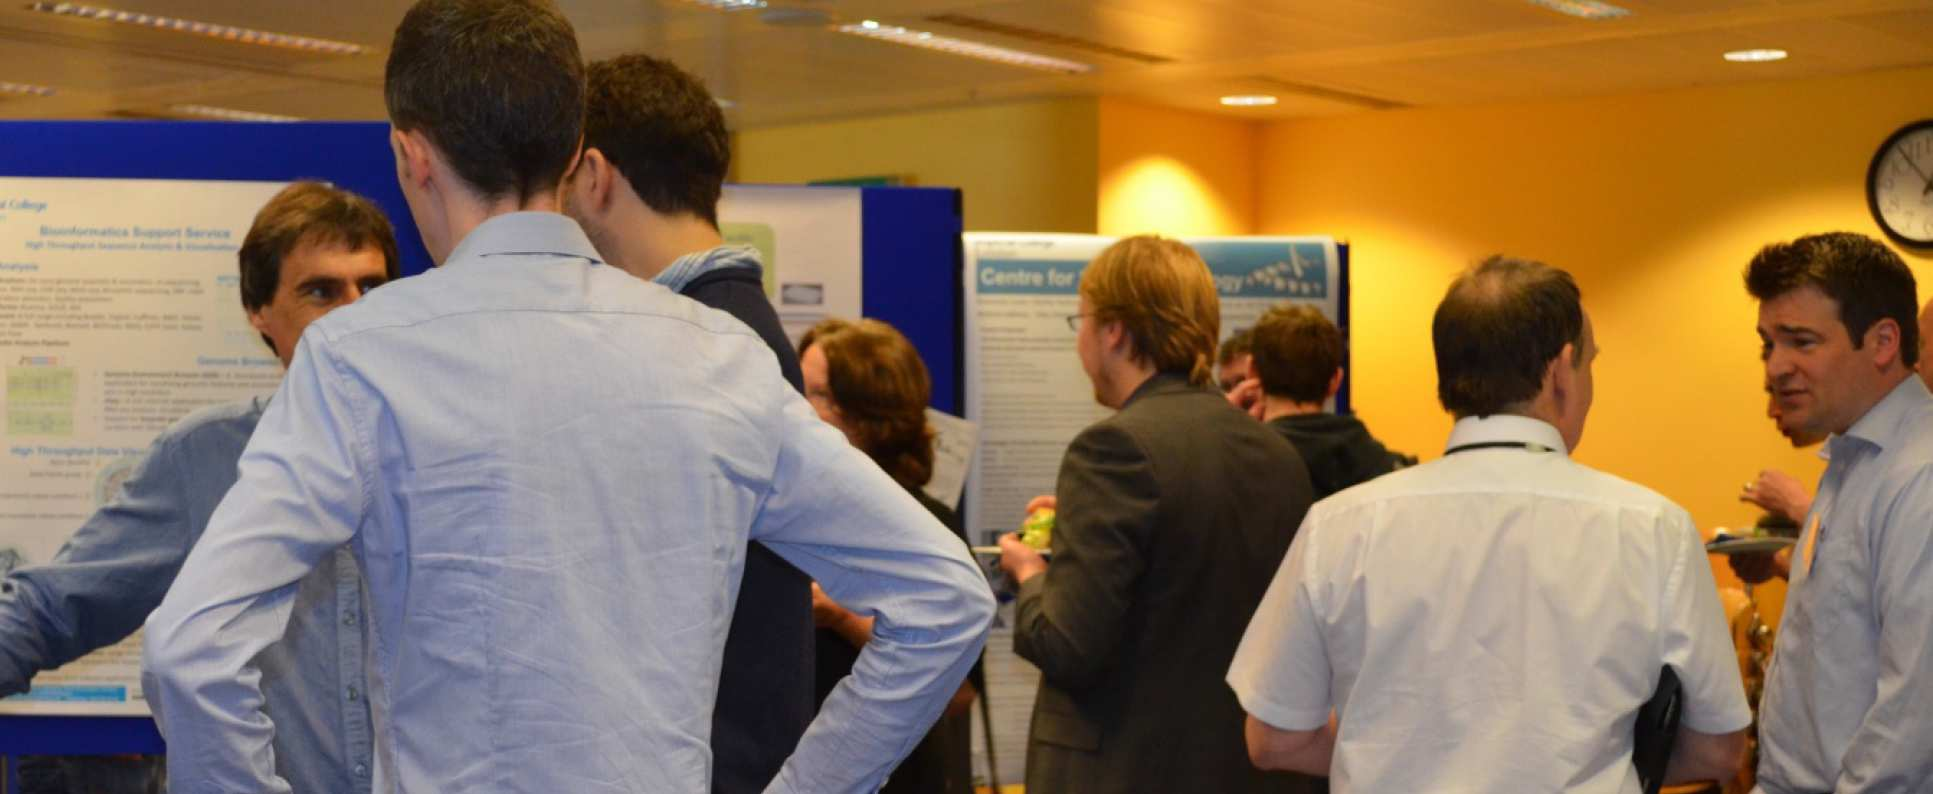 People at the 2012 research facilities showcase